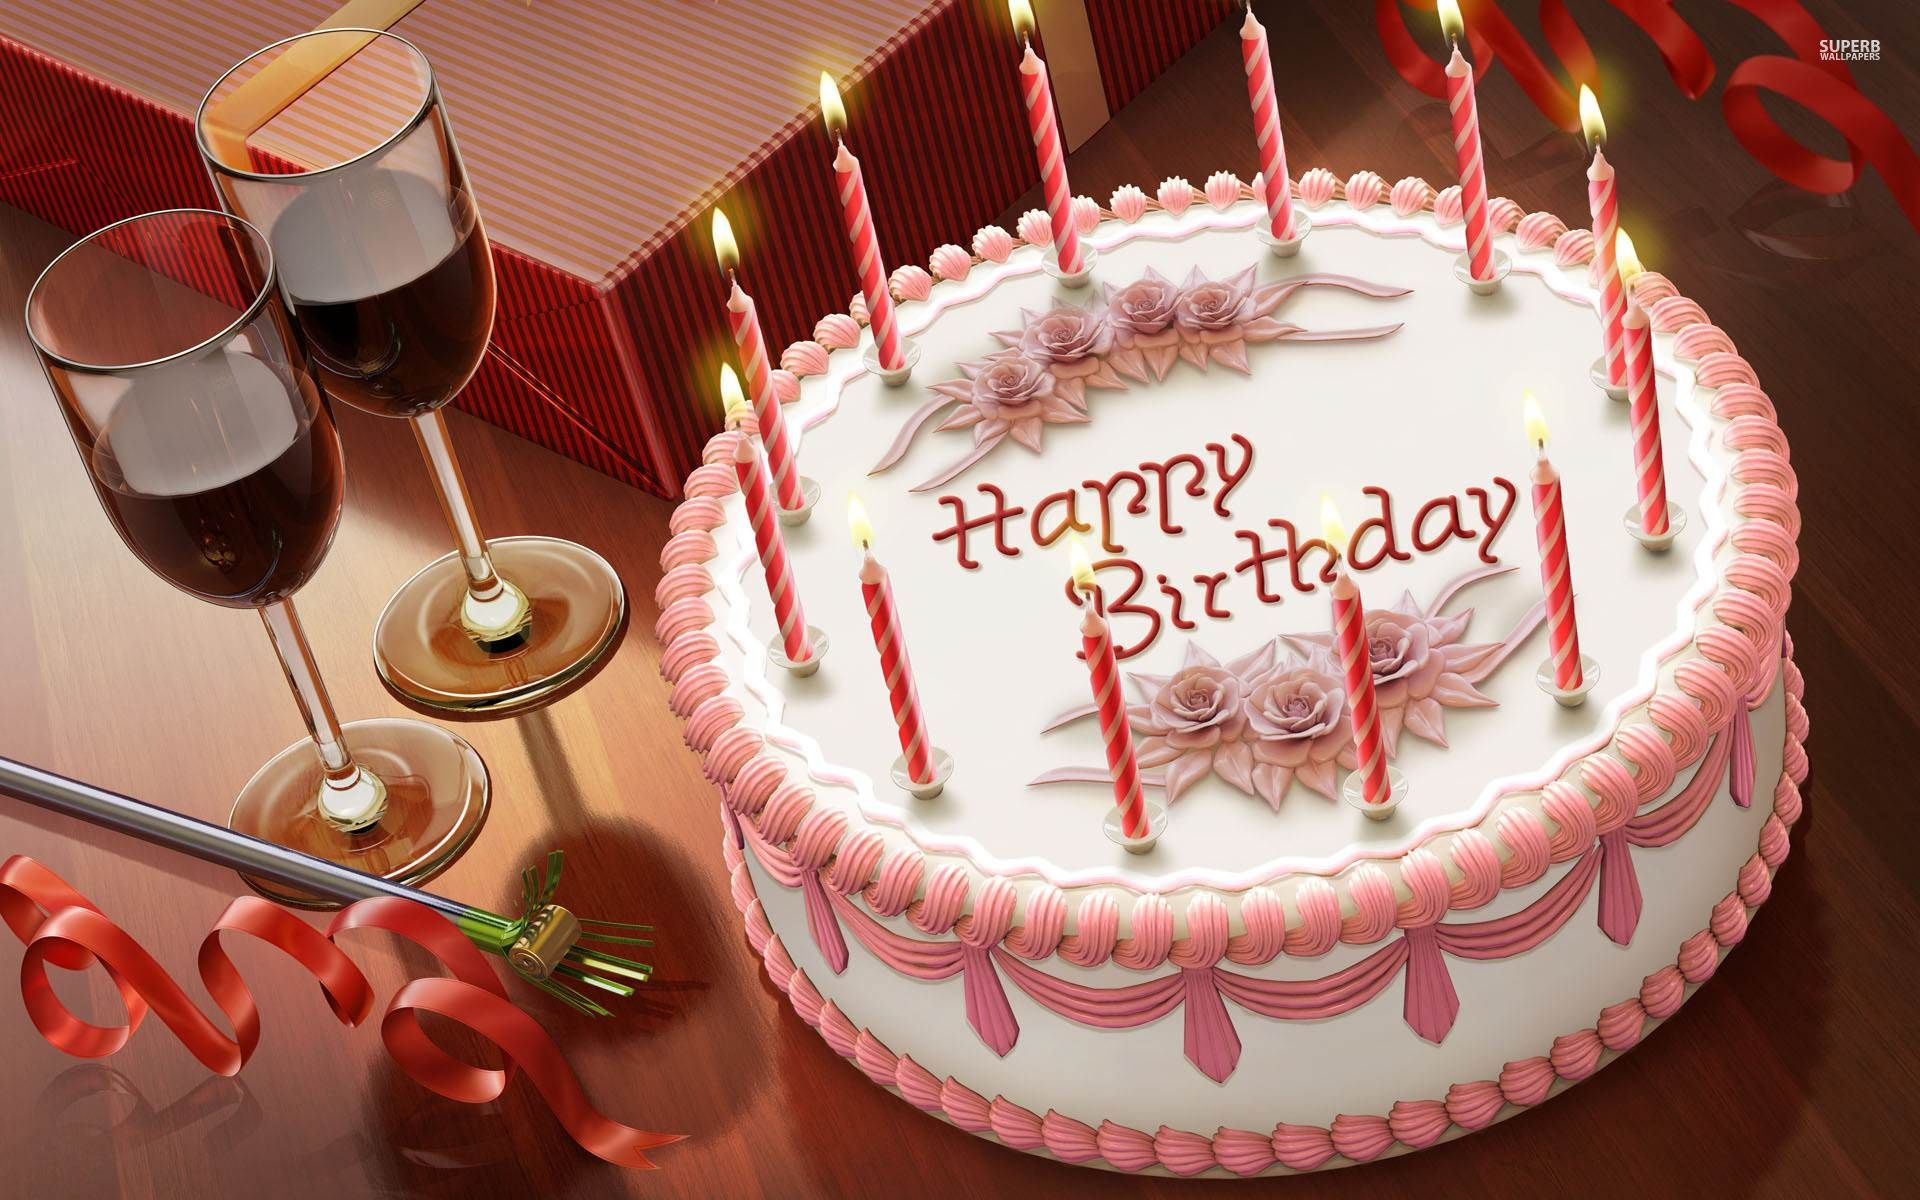 Birthday Cake Pic Download Download Best Birthday Cake Wallpaper Full Hd Wallpapers 15001500